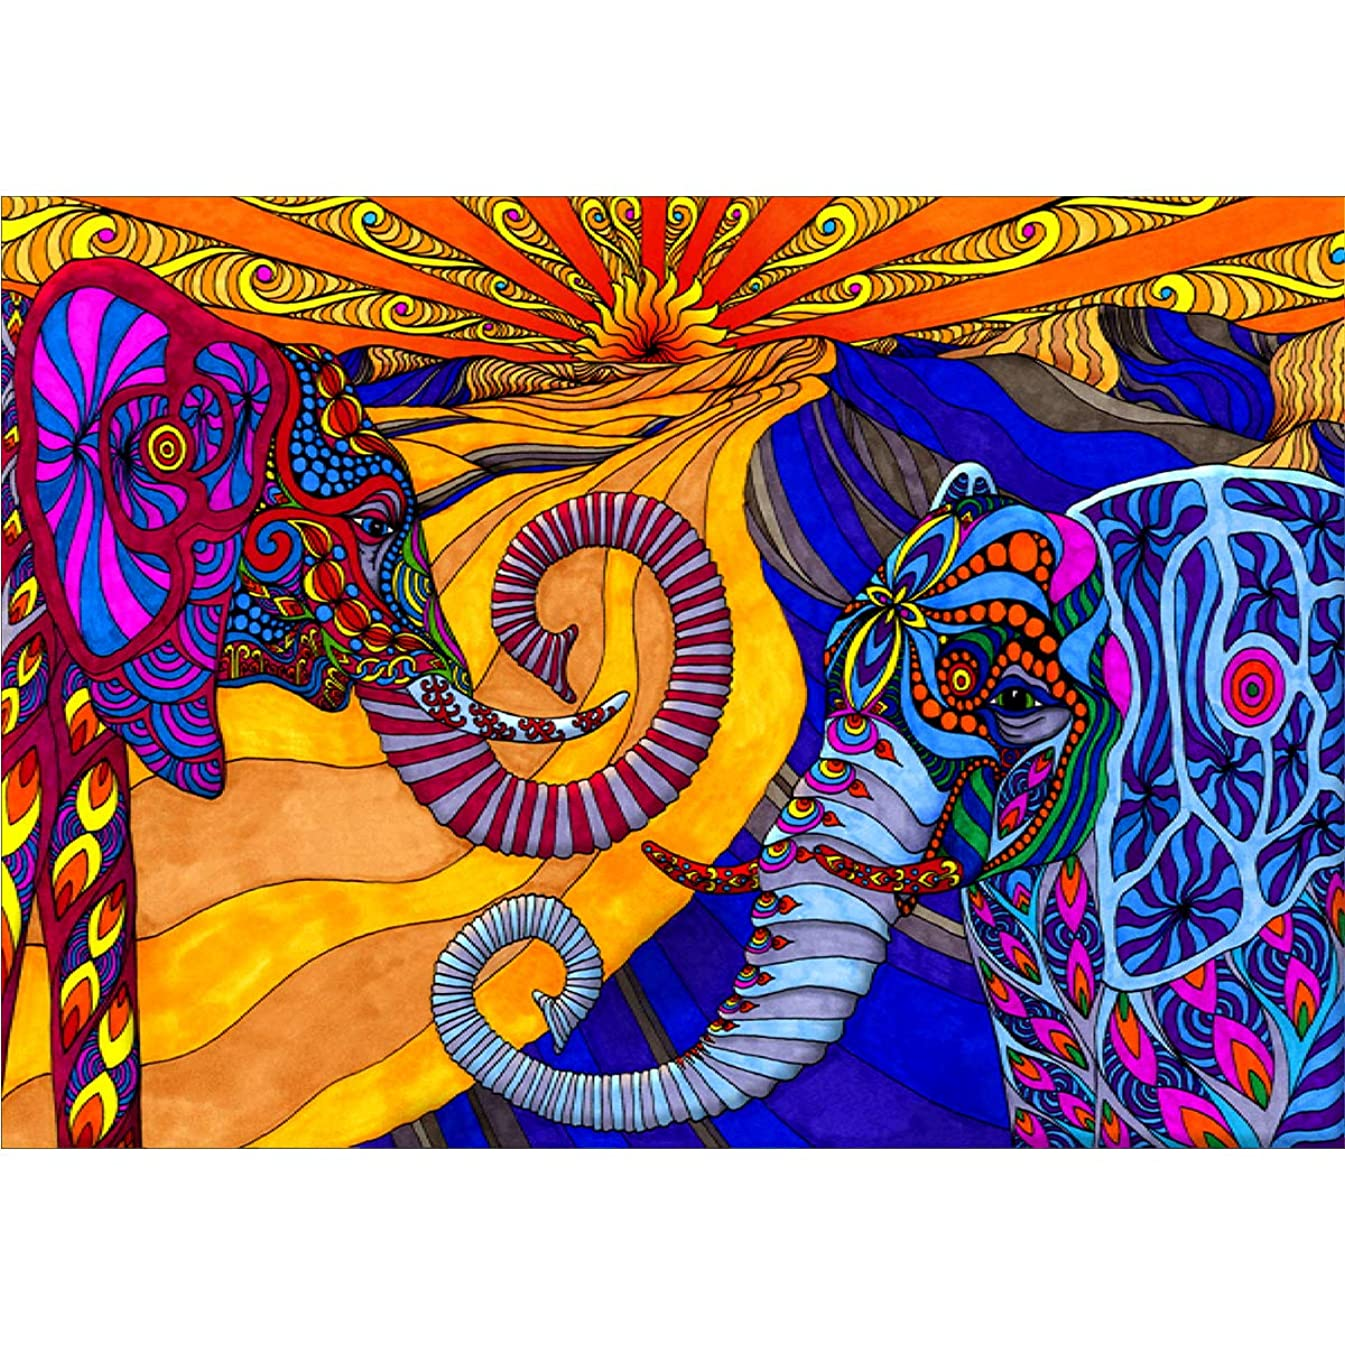 HengQ Diamond Painting for Adult or Kid 5D DIY Full Drill Diamond Painting Sets,Diamond Painting by Number,Elephant Pattern,12